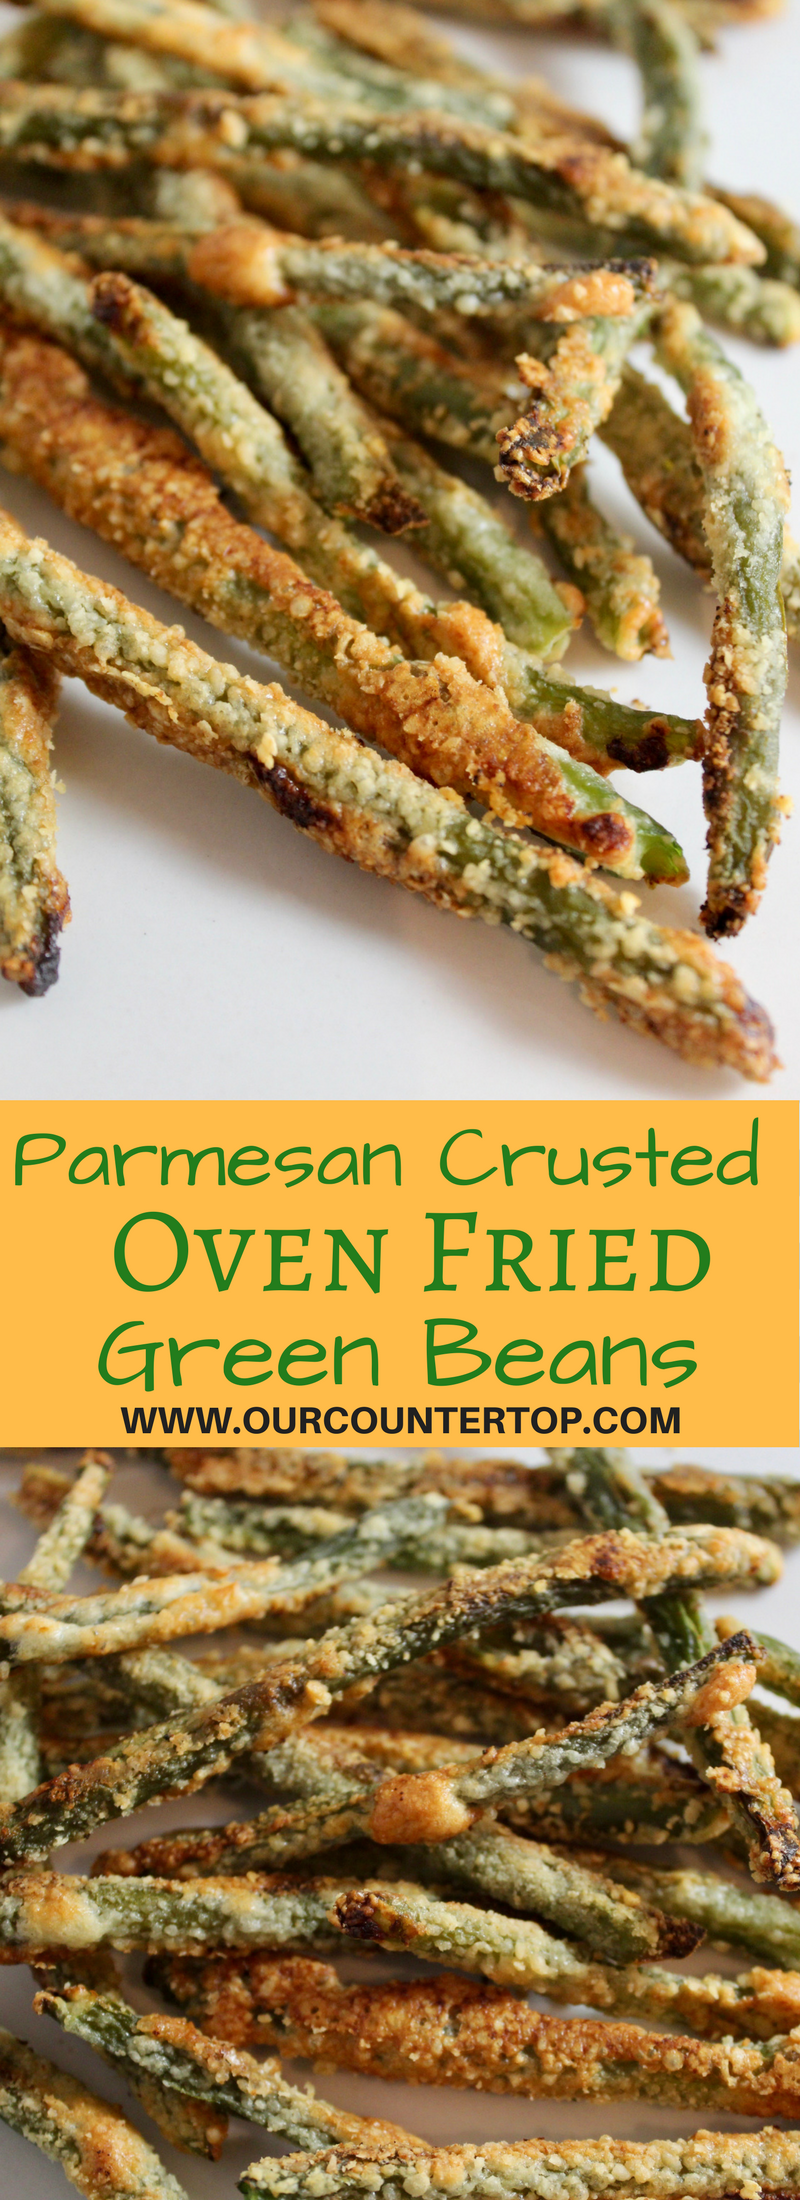 Parmesan Crusted Green Beans This low carb snack is delicious, kid friendly, and crispy!This low carb snack is delicious, kid friendly, and crispy!